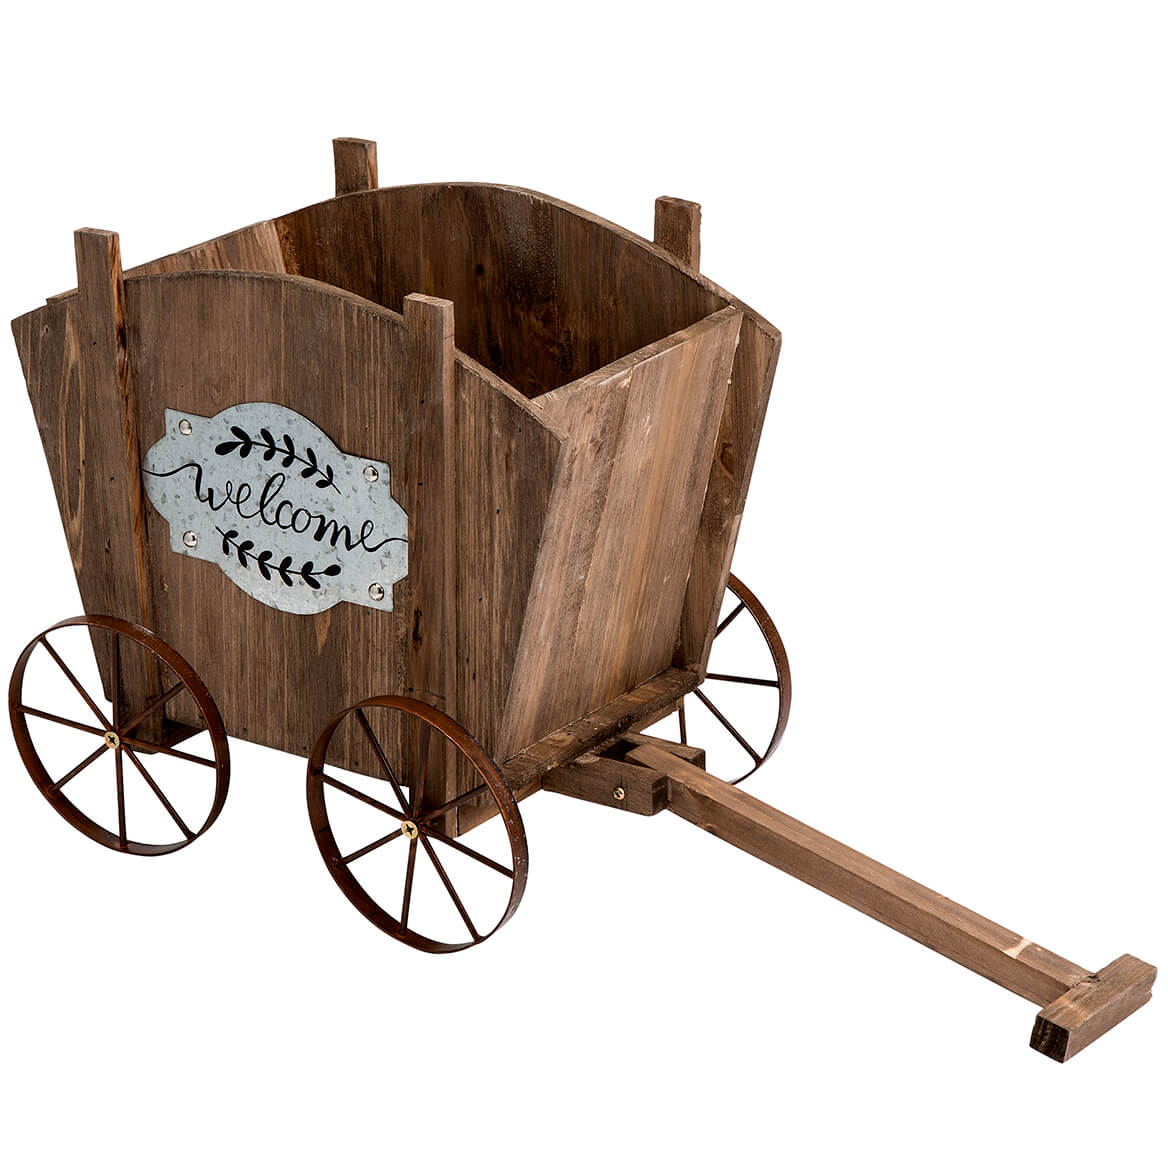 Welcome Wagon Wooden Planter Box-368961